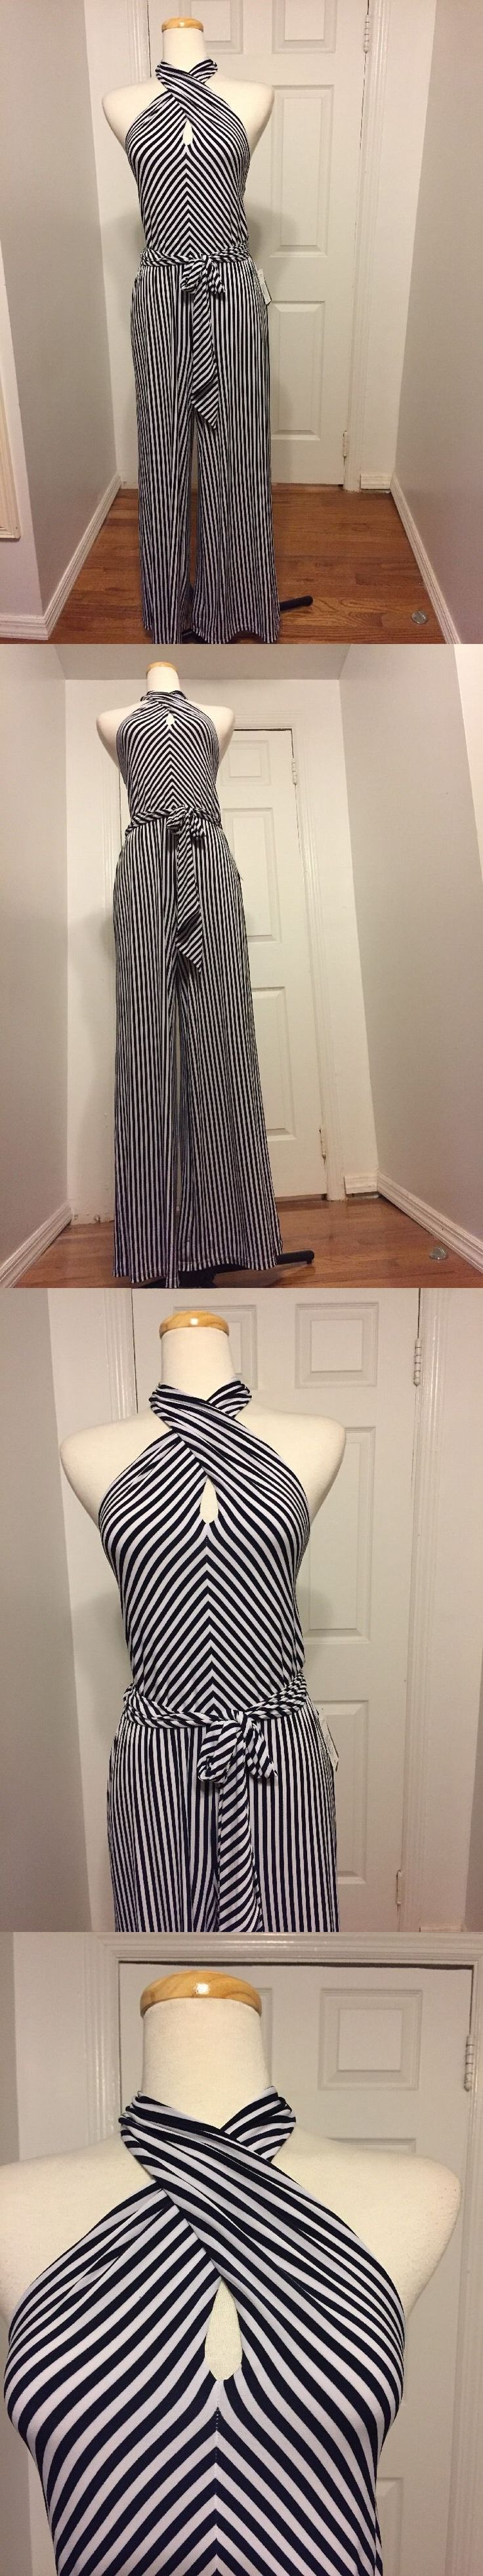 Jumpsuits And Rompers: Nwt Ralph Lauren Halter Neck Navy And White Stripe Palazzo Jumpsuit Size Pl -> BUY IT NOW ONLY: $49.99 on eBay!